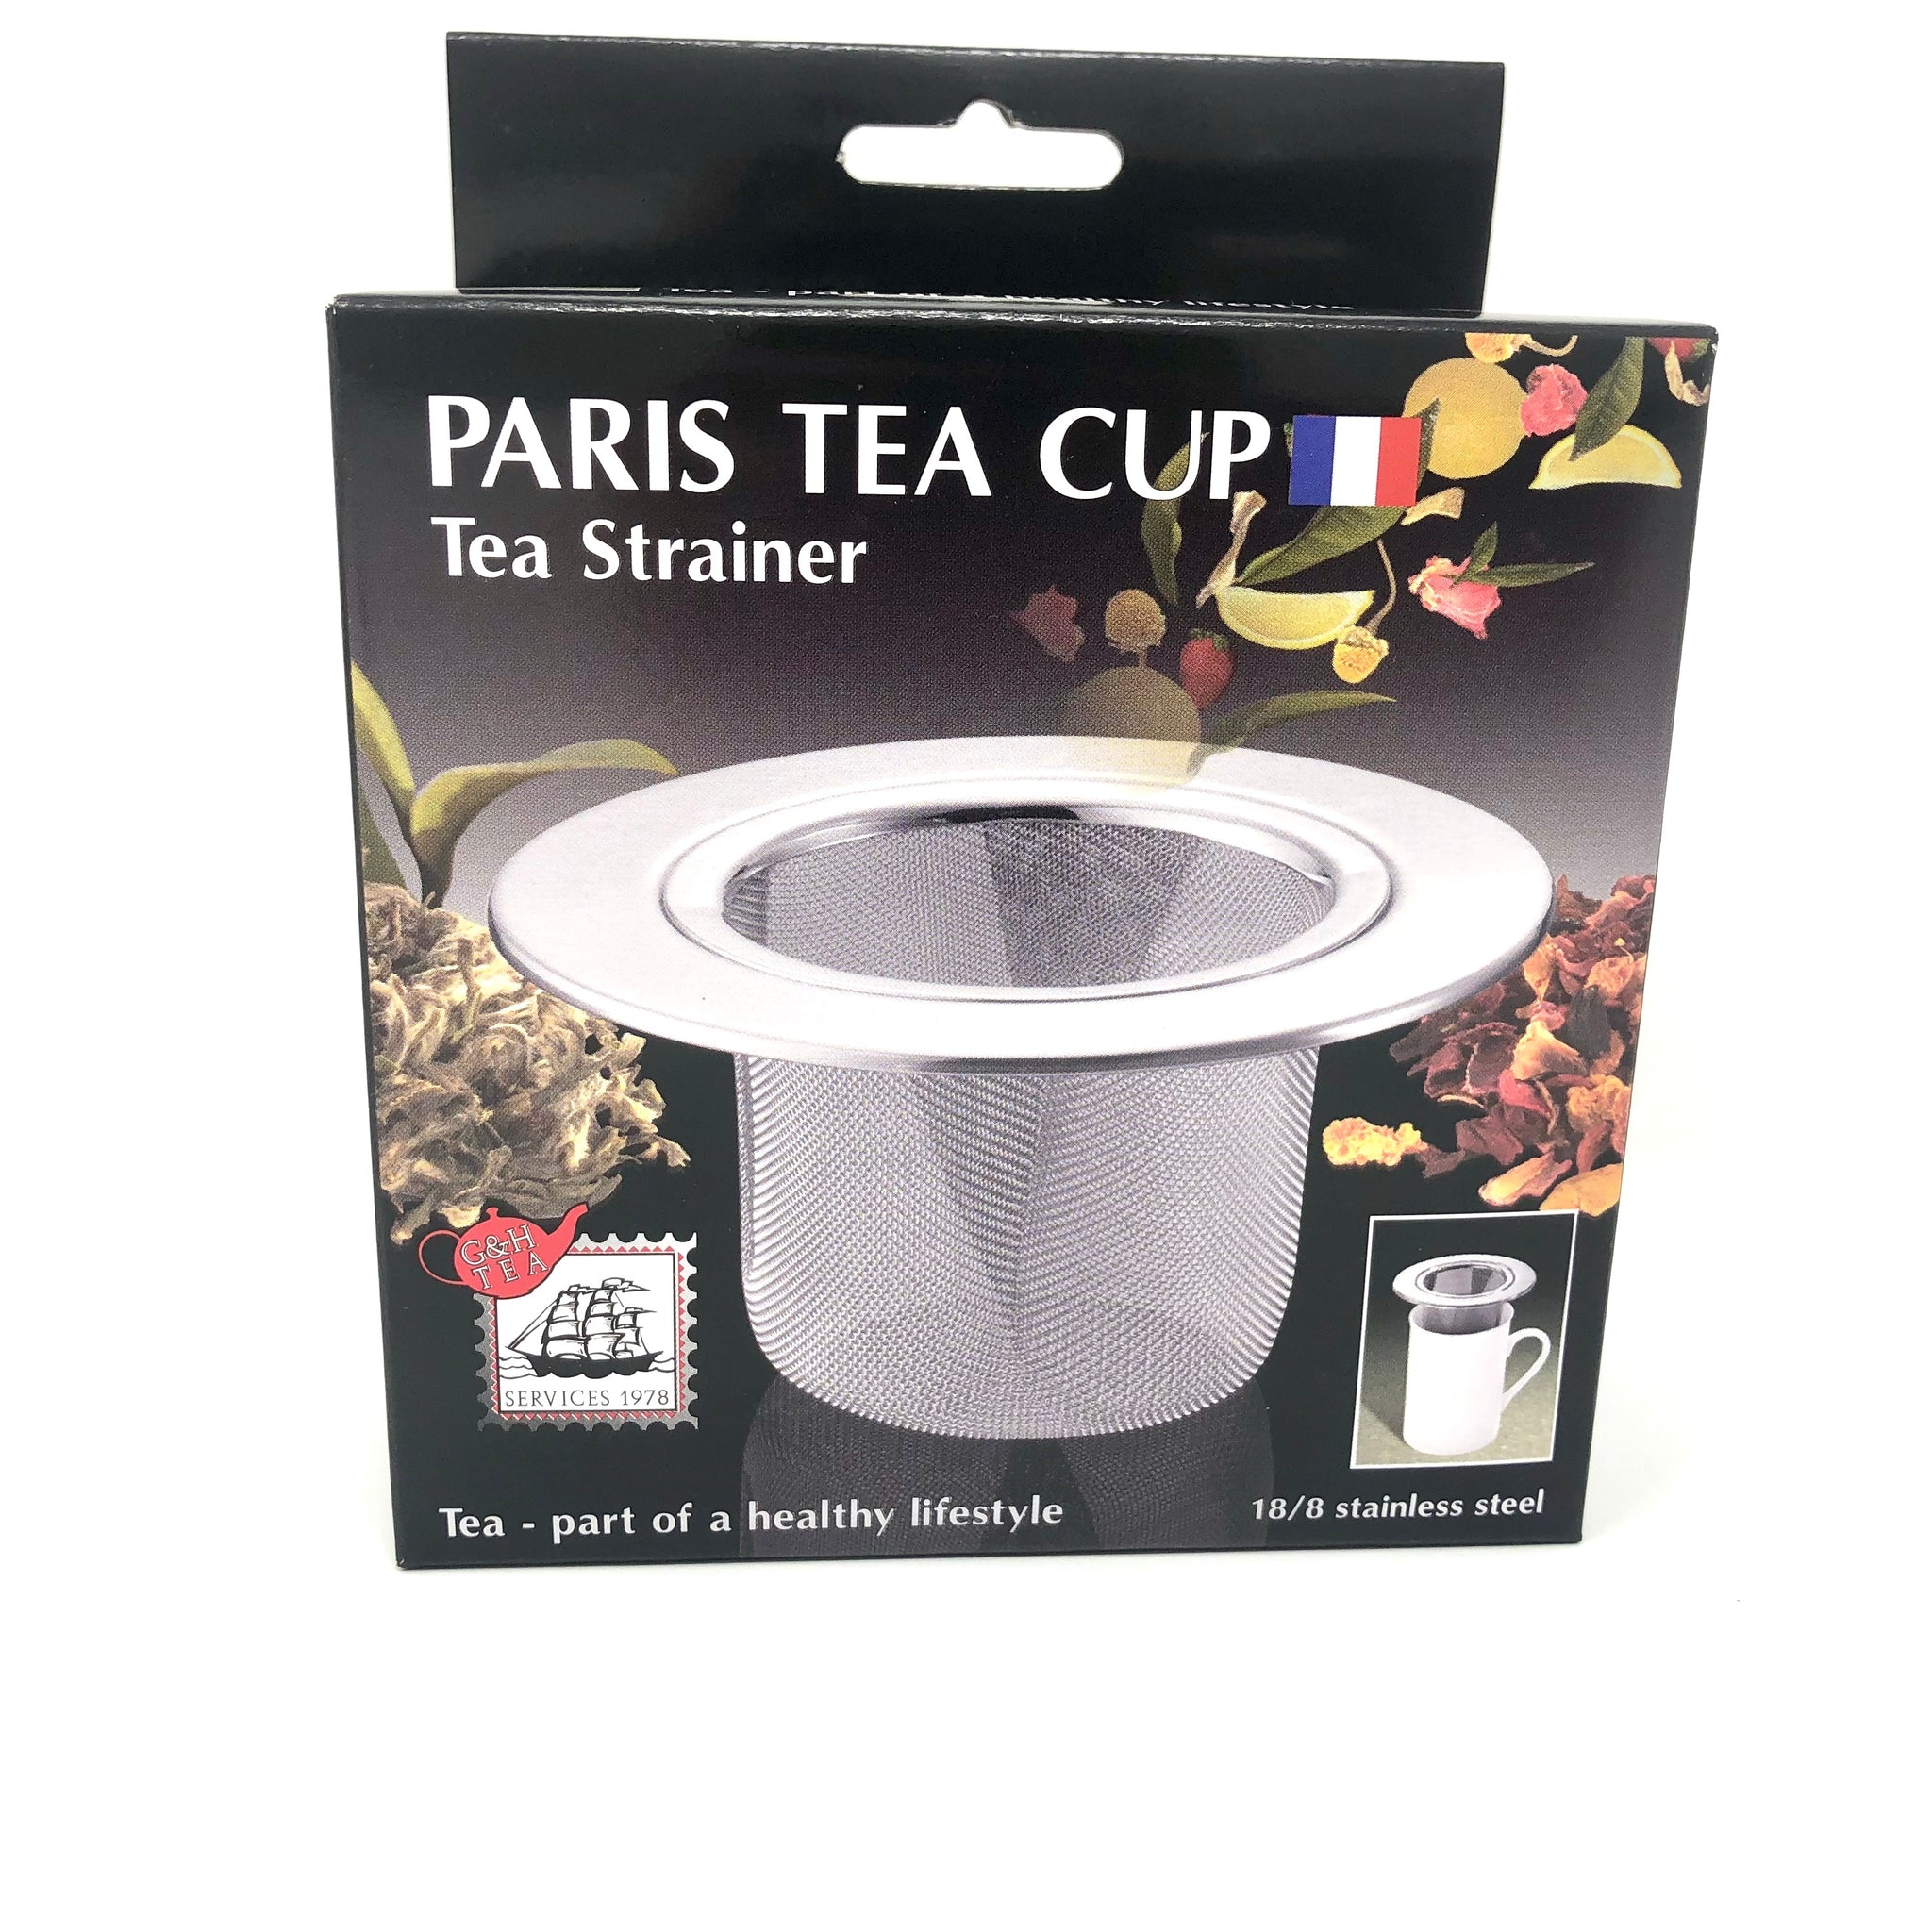 Paris Tea Cup Tea Strainer